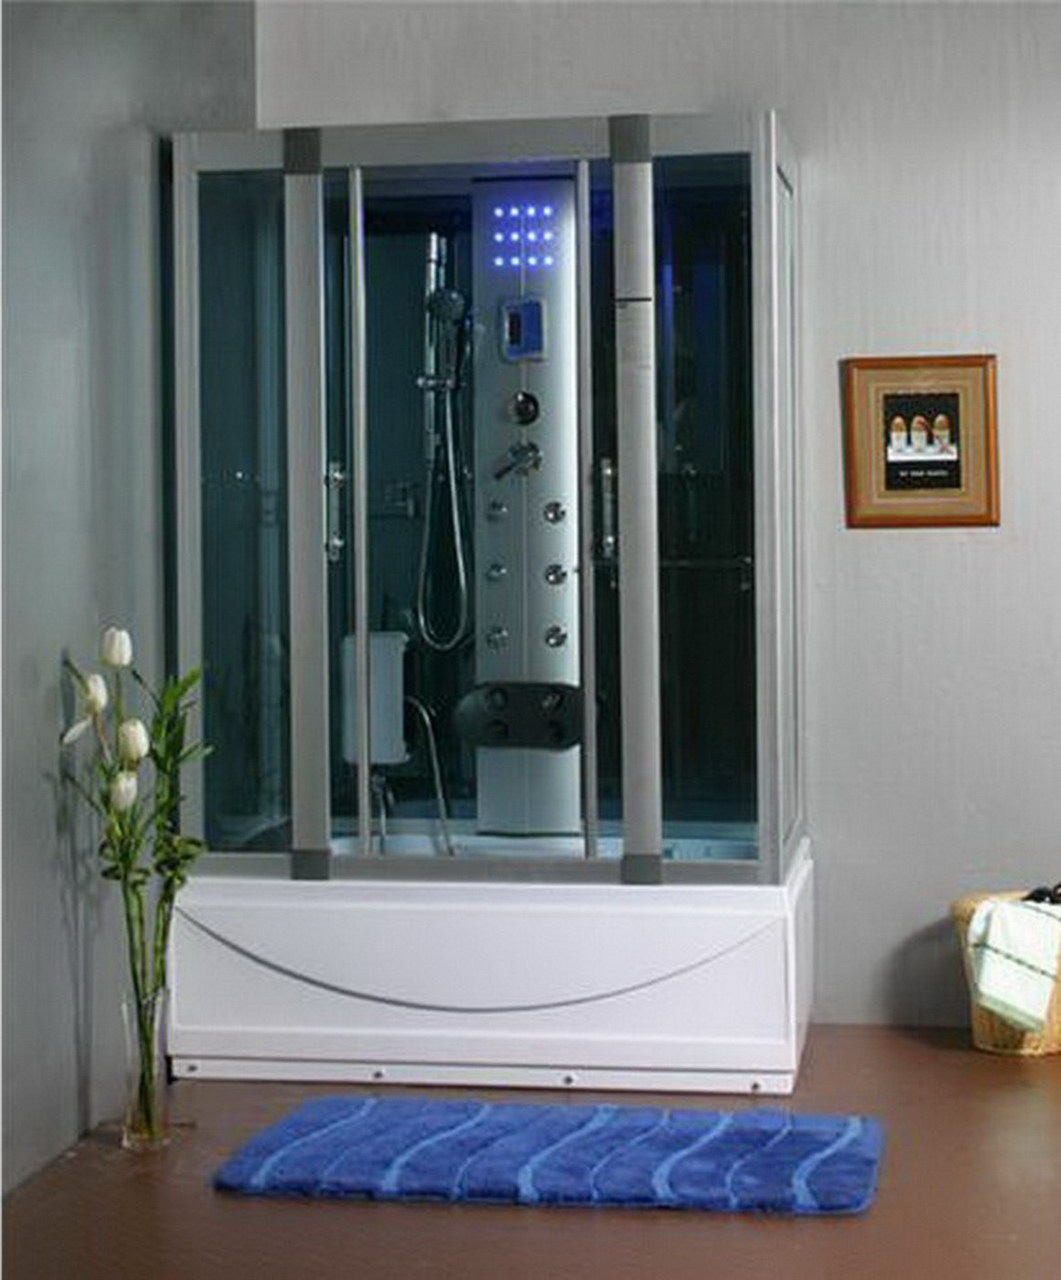 Steam Shower Room With deep Whirlpool Tub w/Air Bubble.Termostatic ...